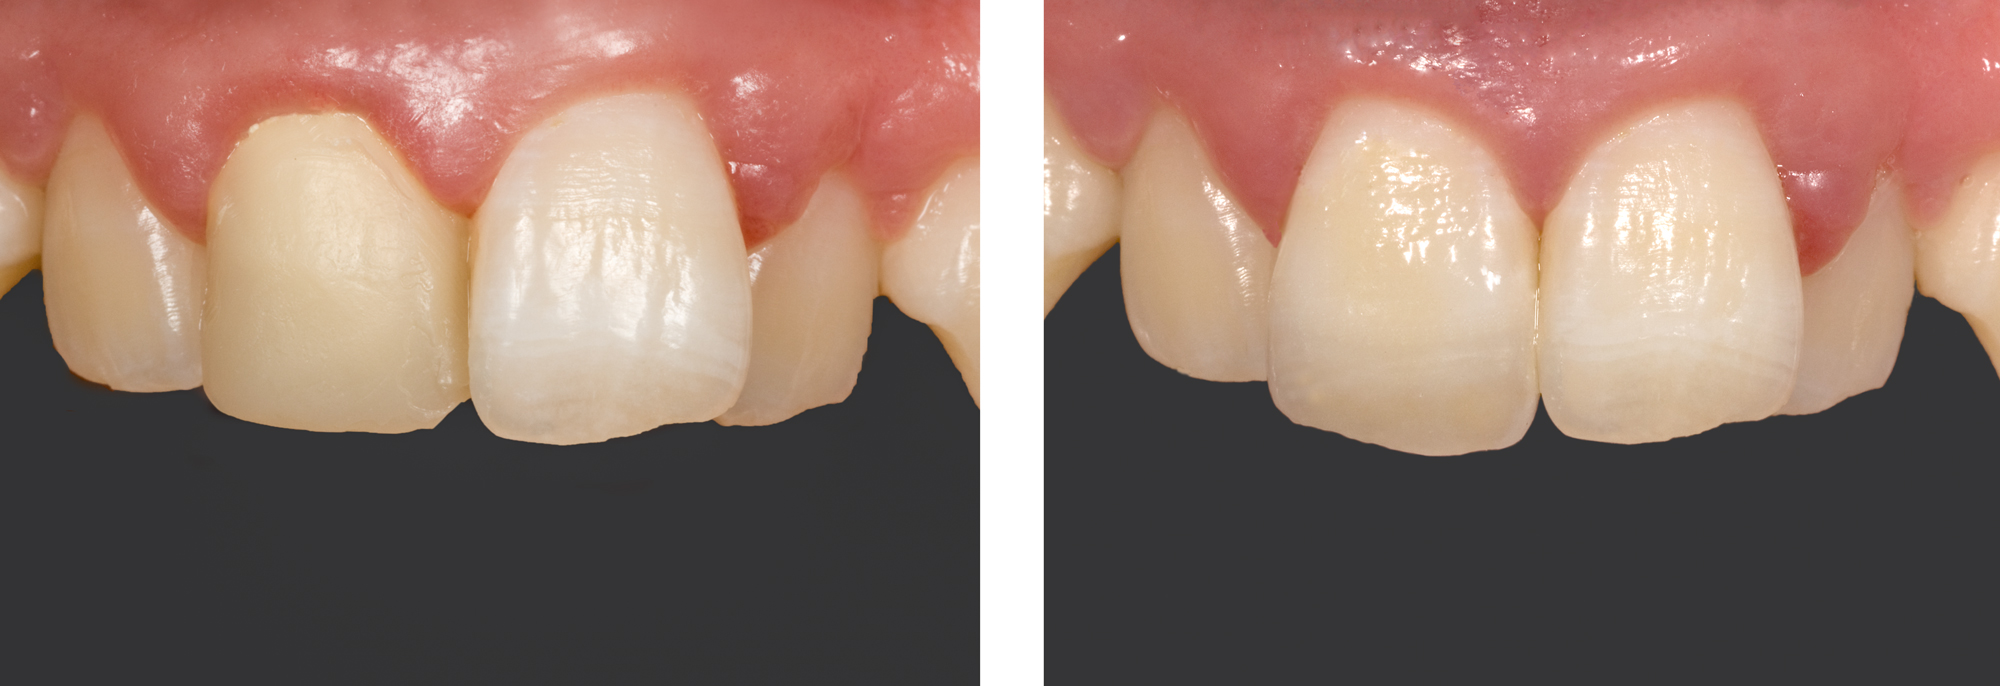 Single Front Tooth by Ron Winter of Fabulous Teeth @ Seaside Dental Laboratory Takapuna Auckland New Zealand.jpg